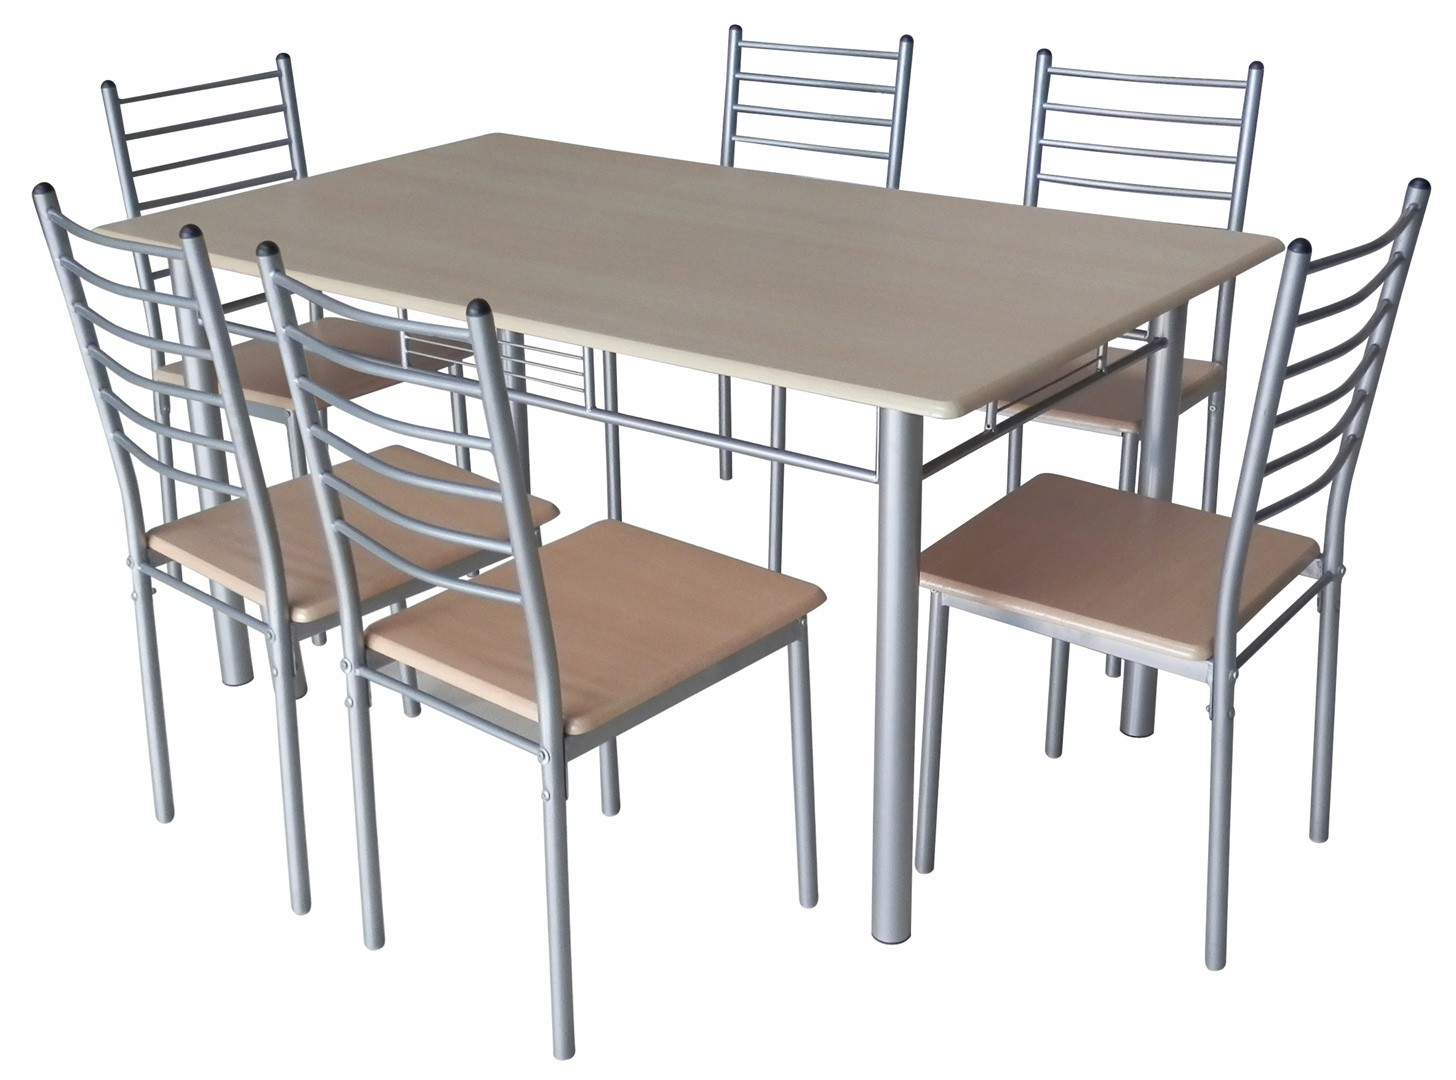 Ensemble table et chaises de cuisine but chaise id es - Table de cuisine chaise ...